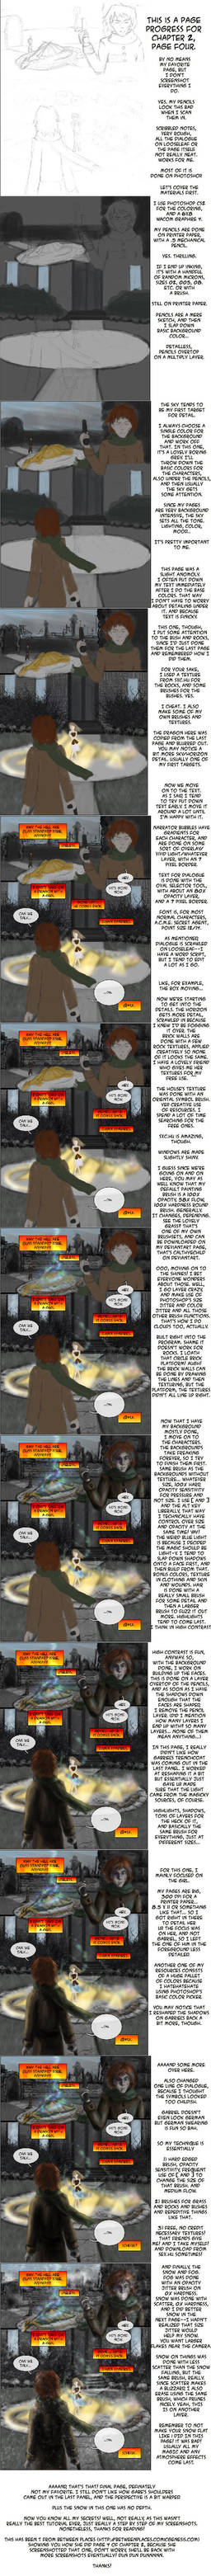 Step by Step: Chapter 2 page 4 by calthyechild